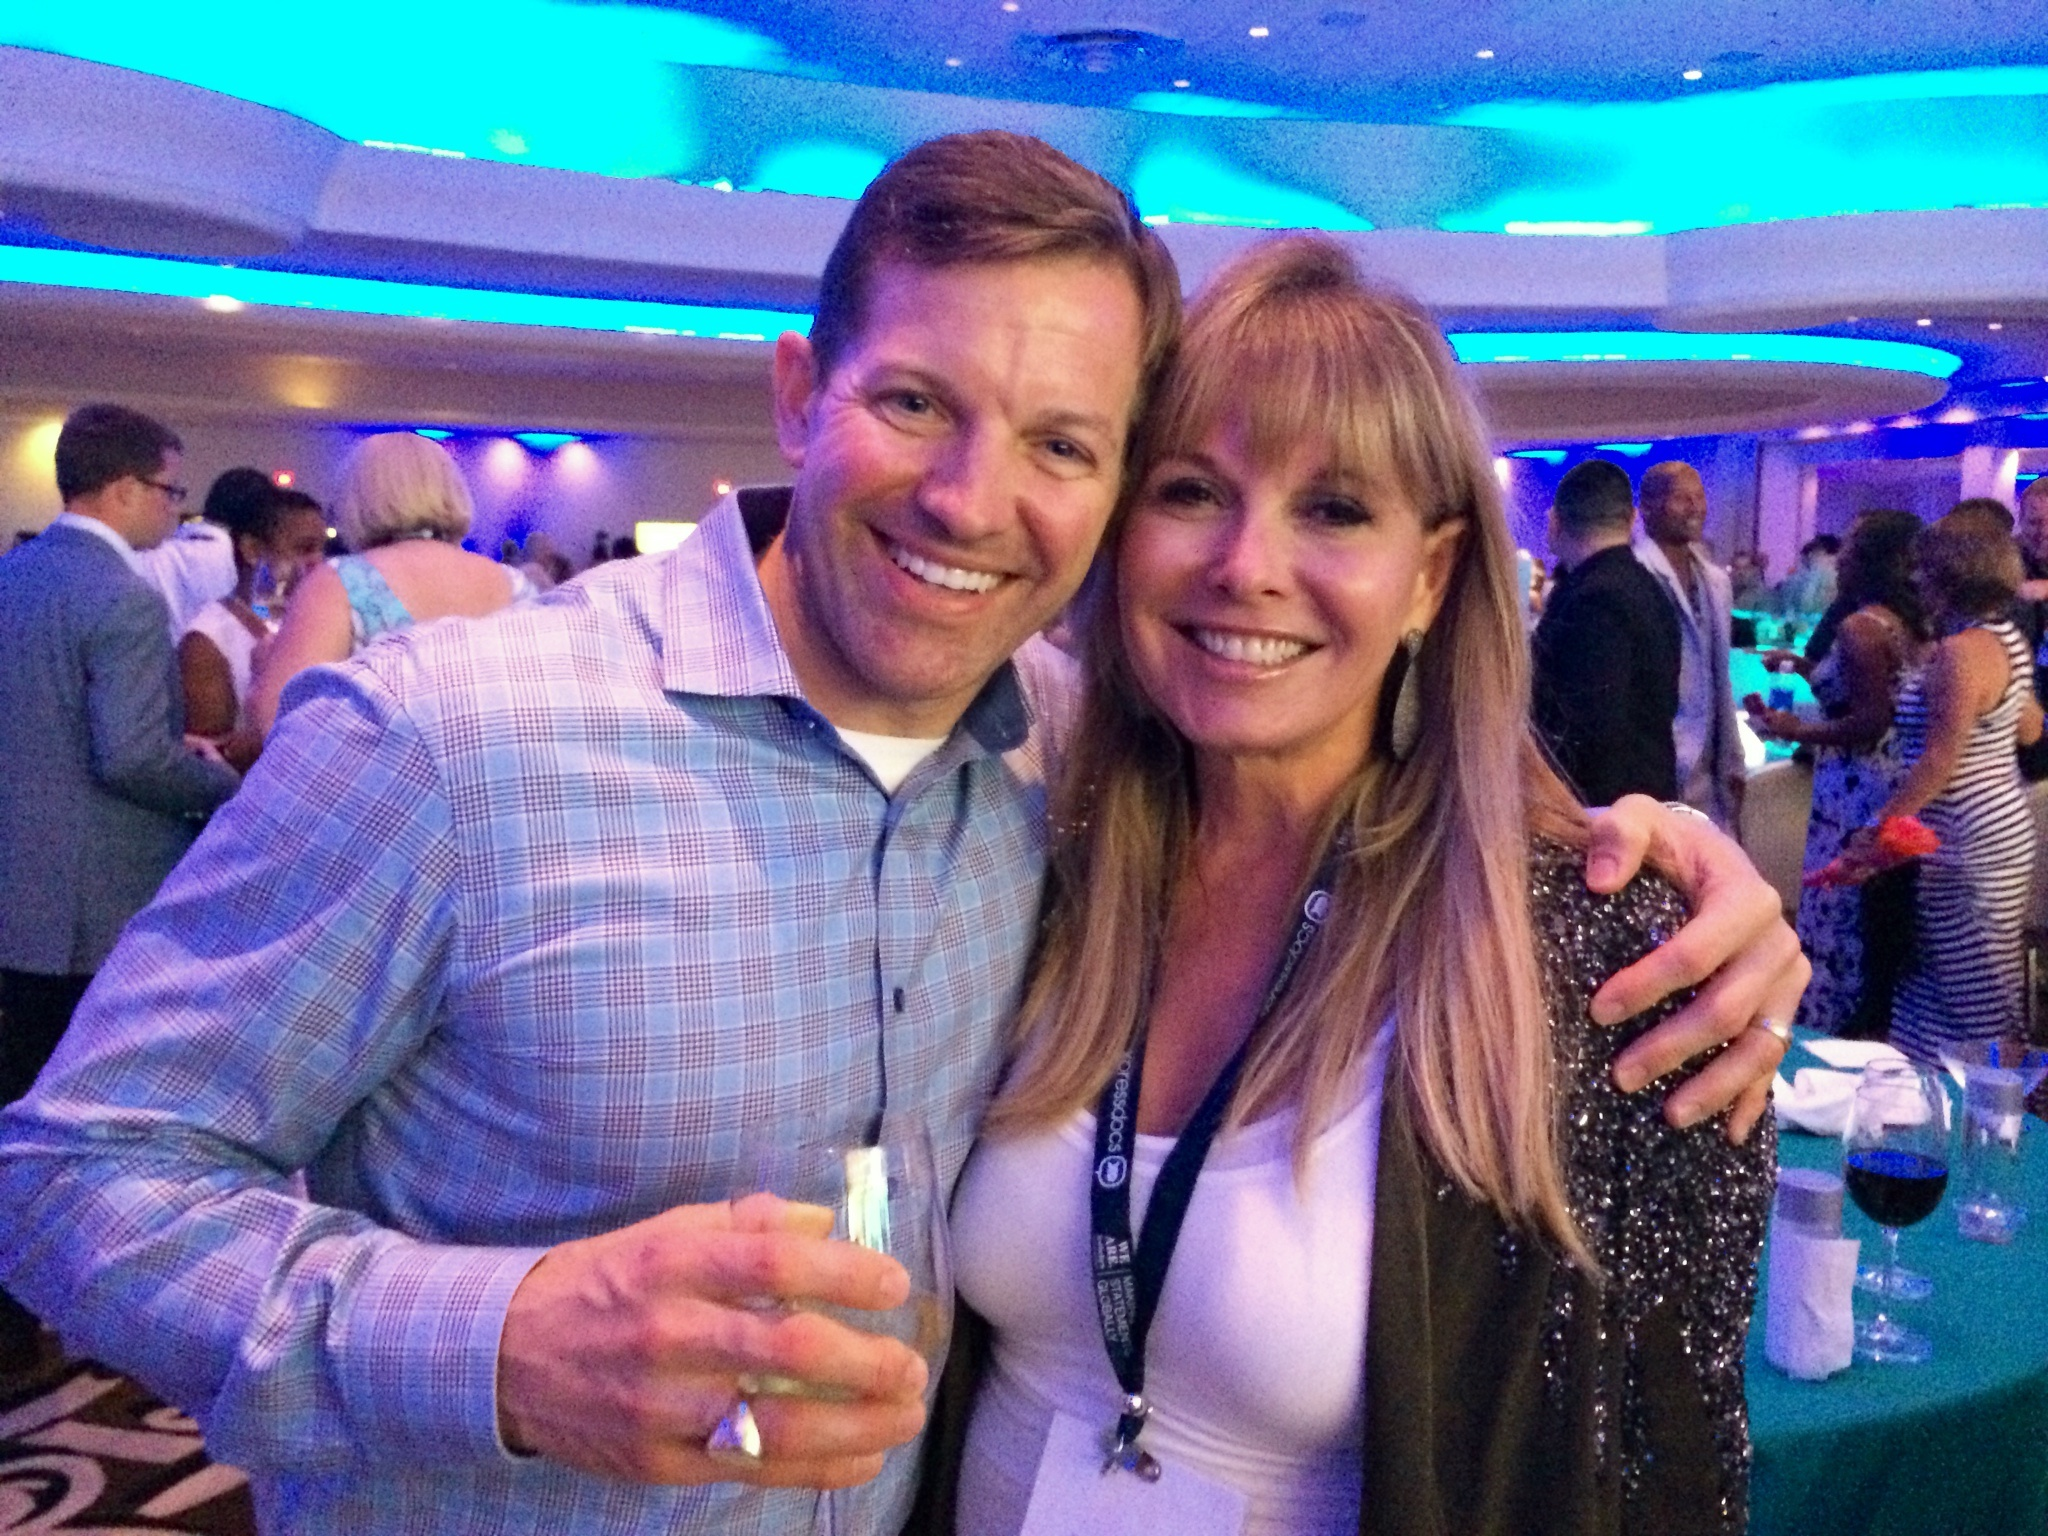 Pictured with International Real Estate friend and Broker in Miami, Florida. Matthew Paul Brown